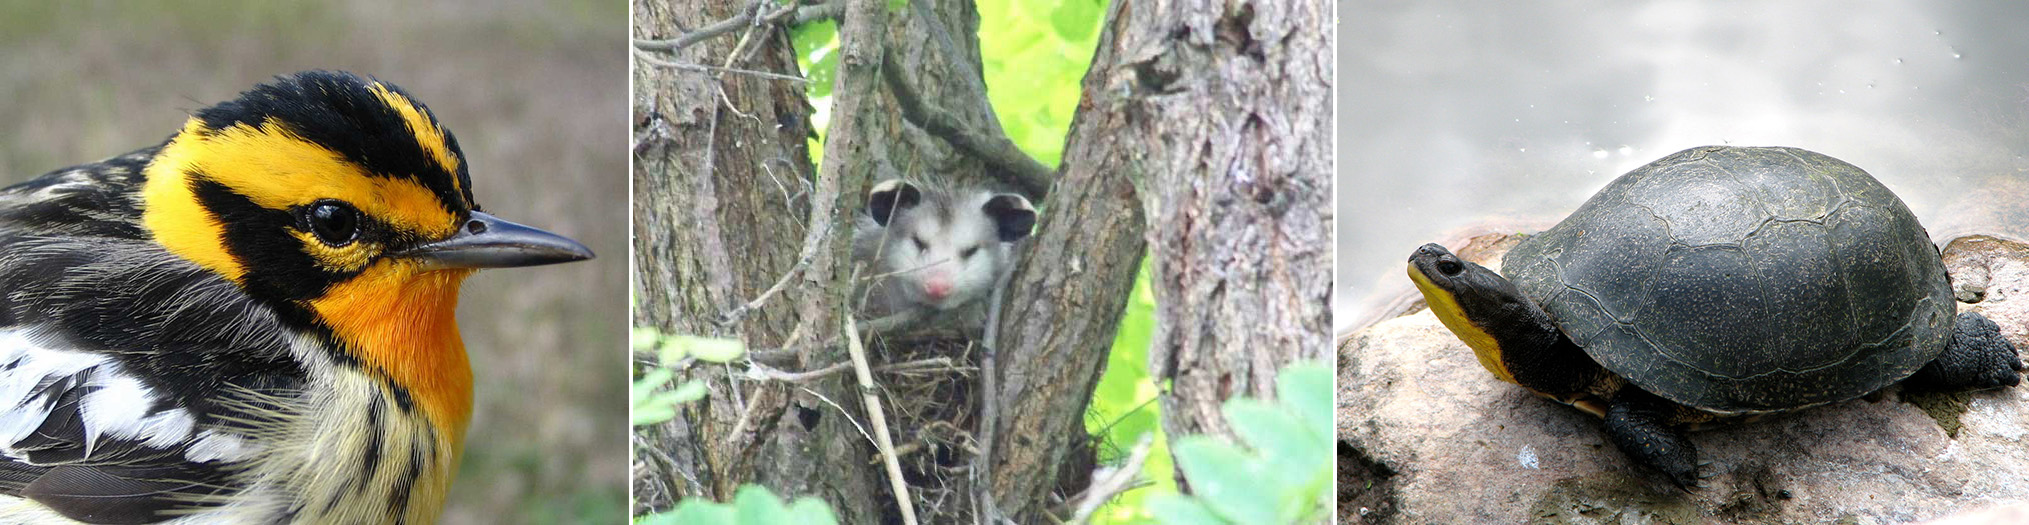 The connection between plants and animals in the spruce forest